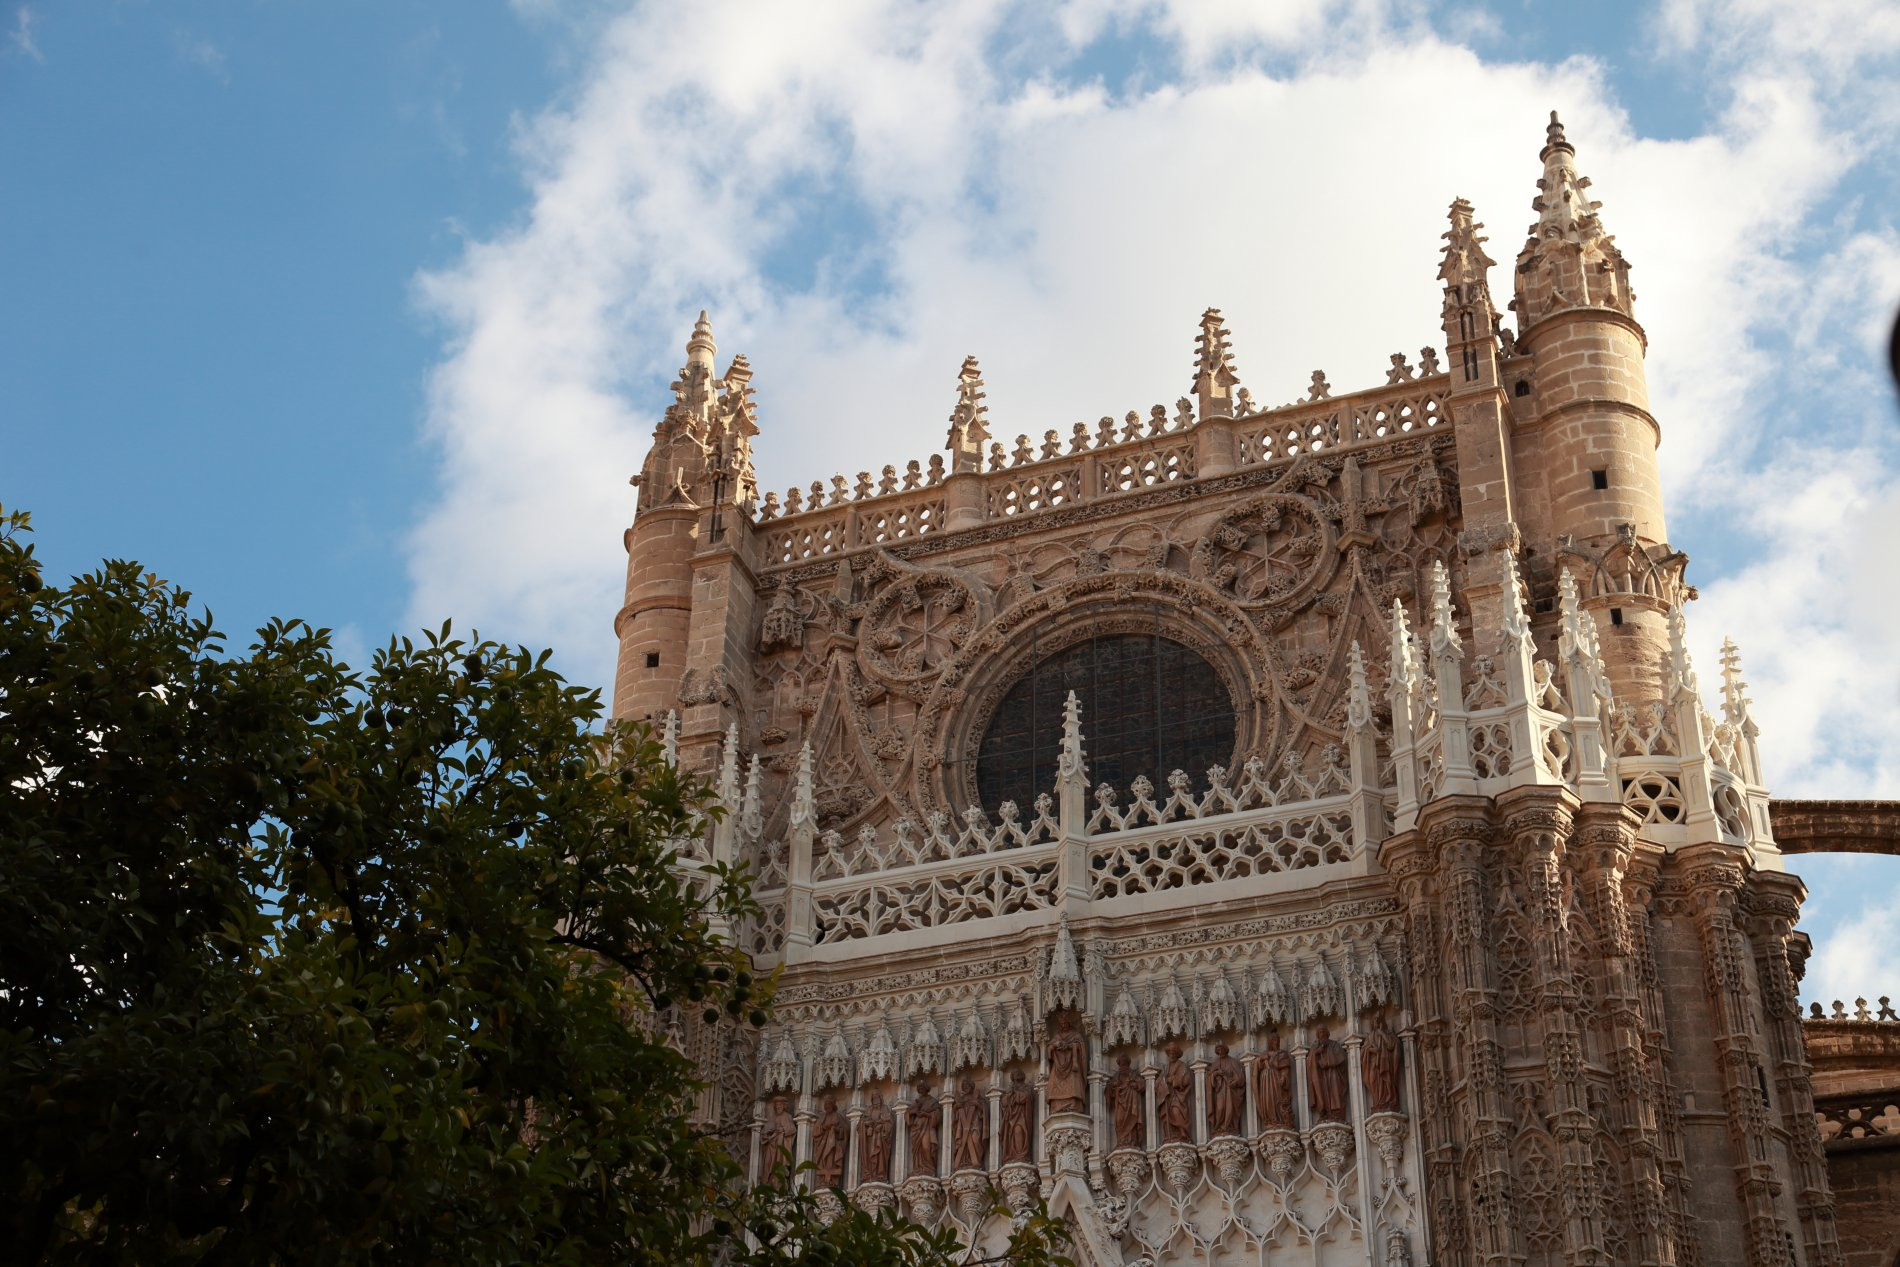 Seville-10.JPG-commment